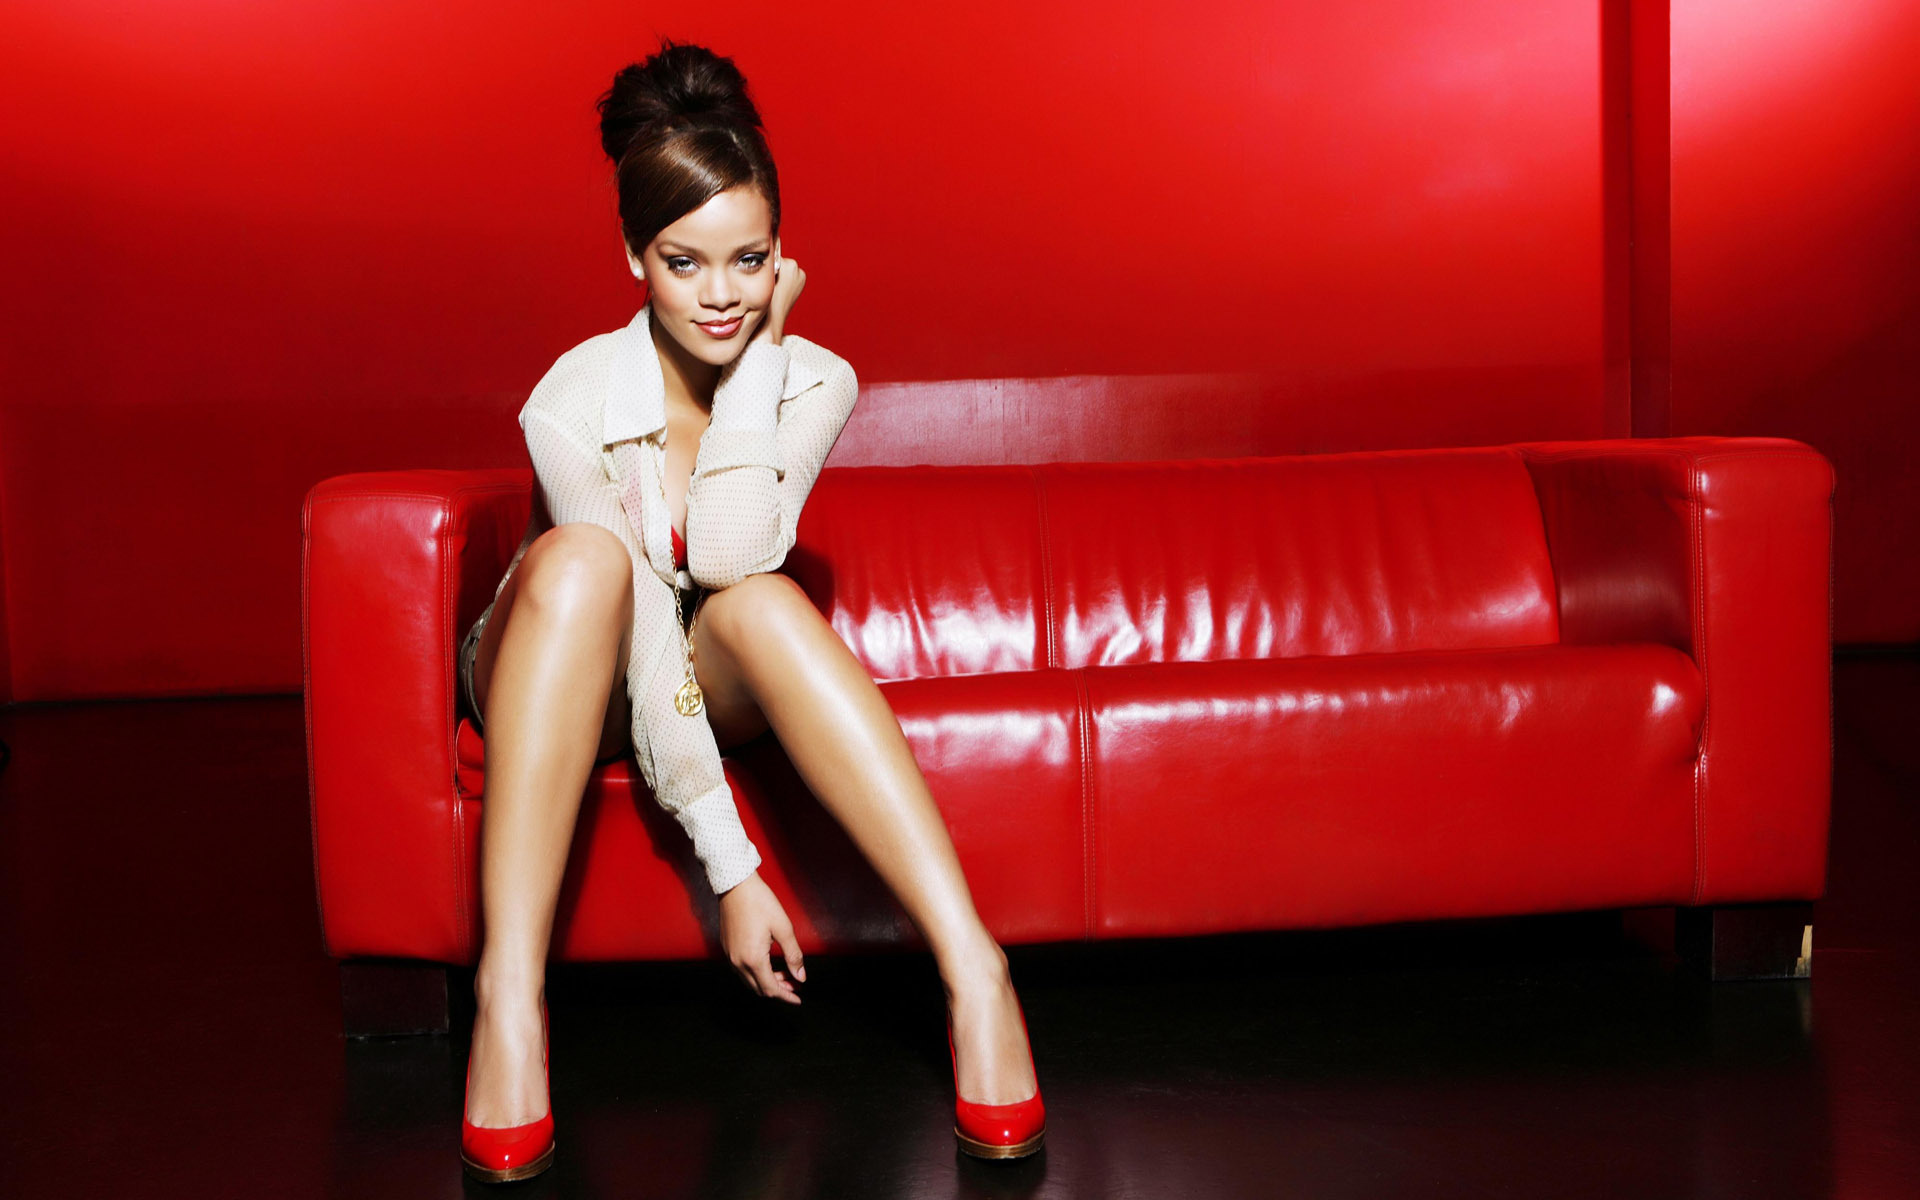 Rihanna 2011 New wallpaper